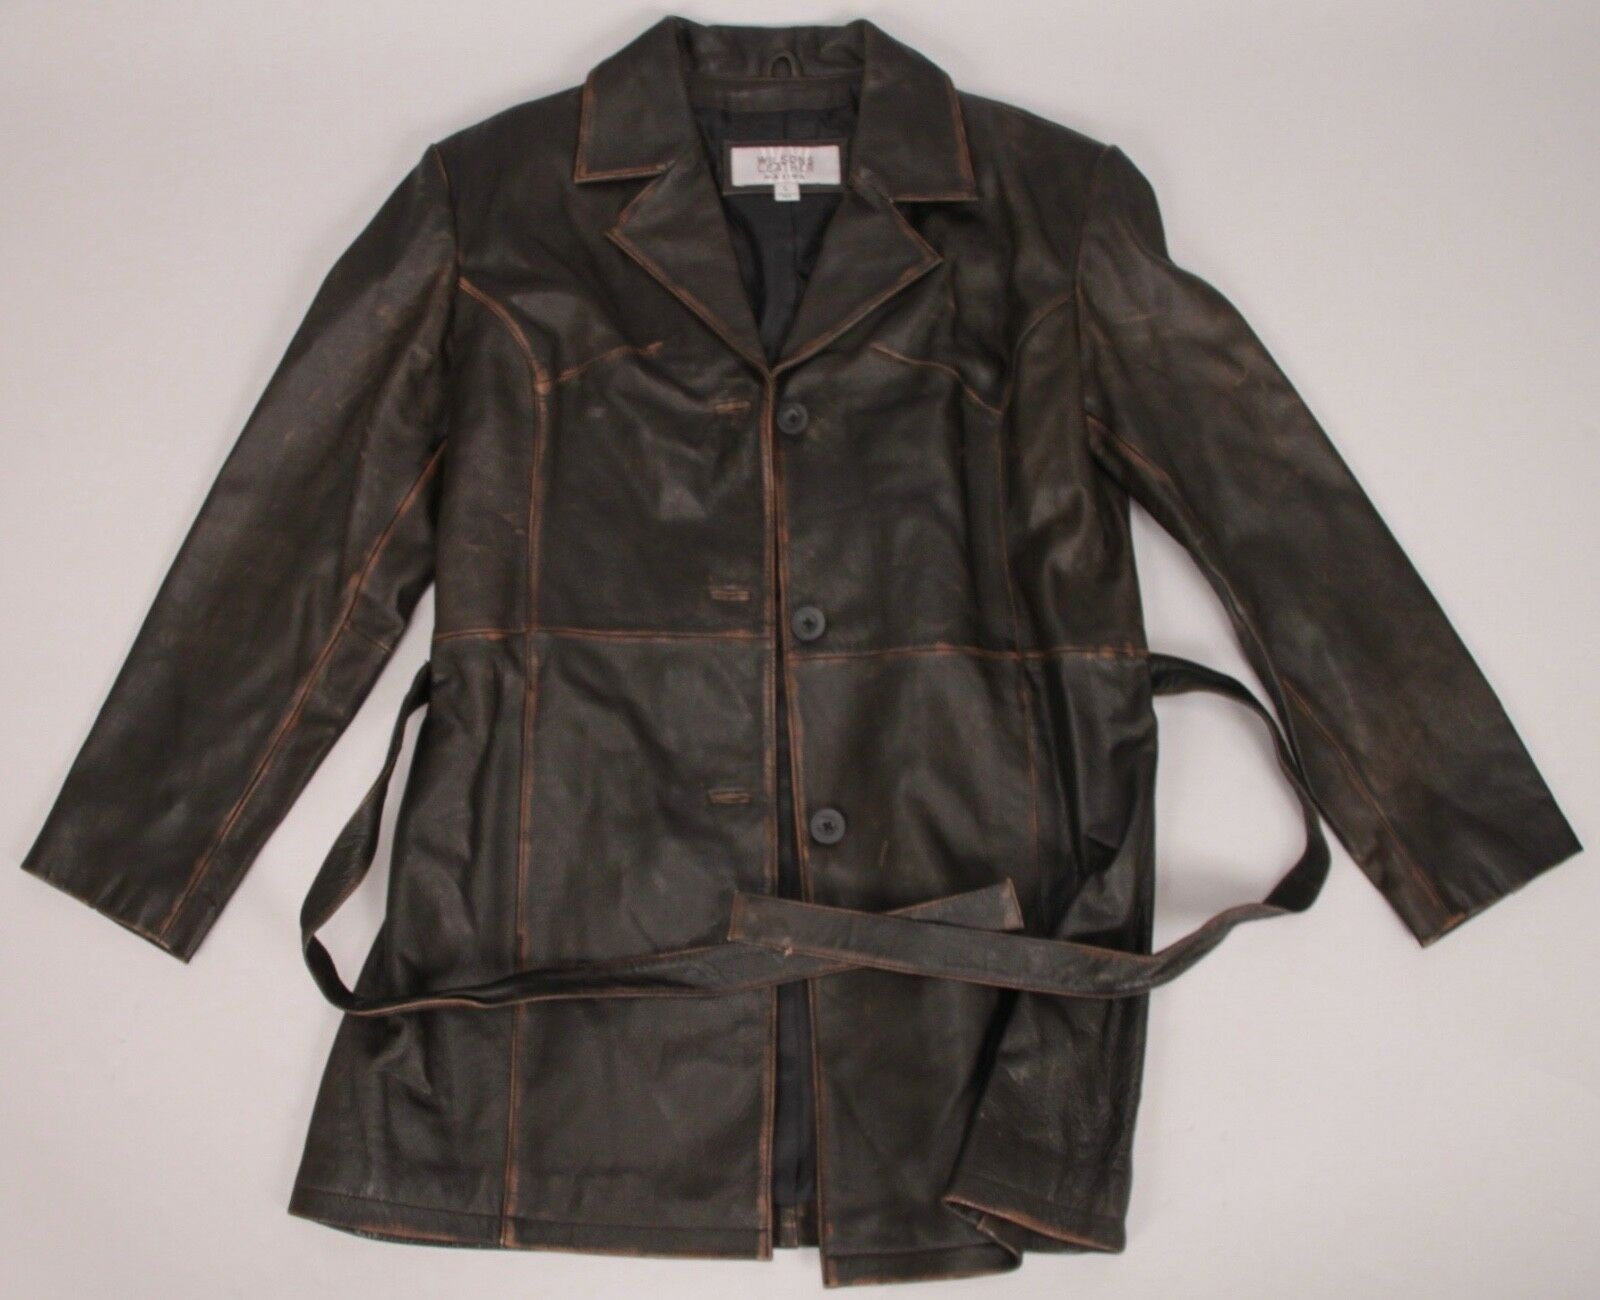 Wilsons Leather Maxima - Brown Vintage Distressed Women's Leather Coat - Size L